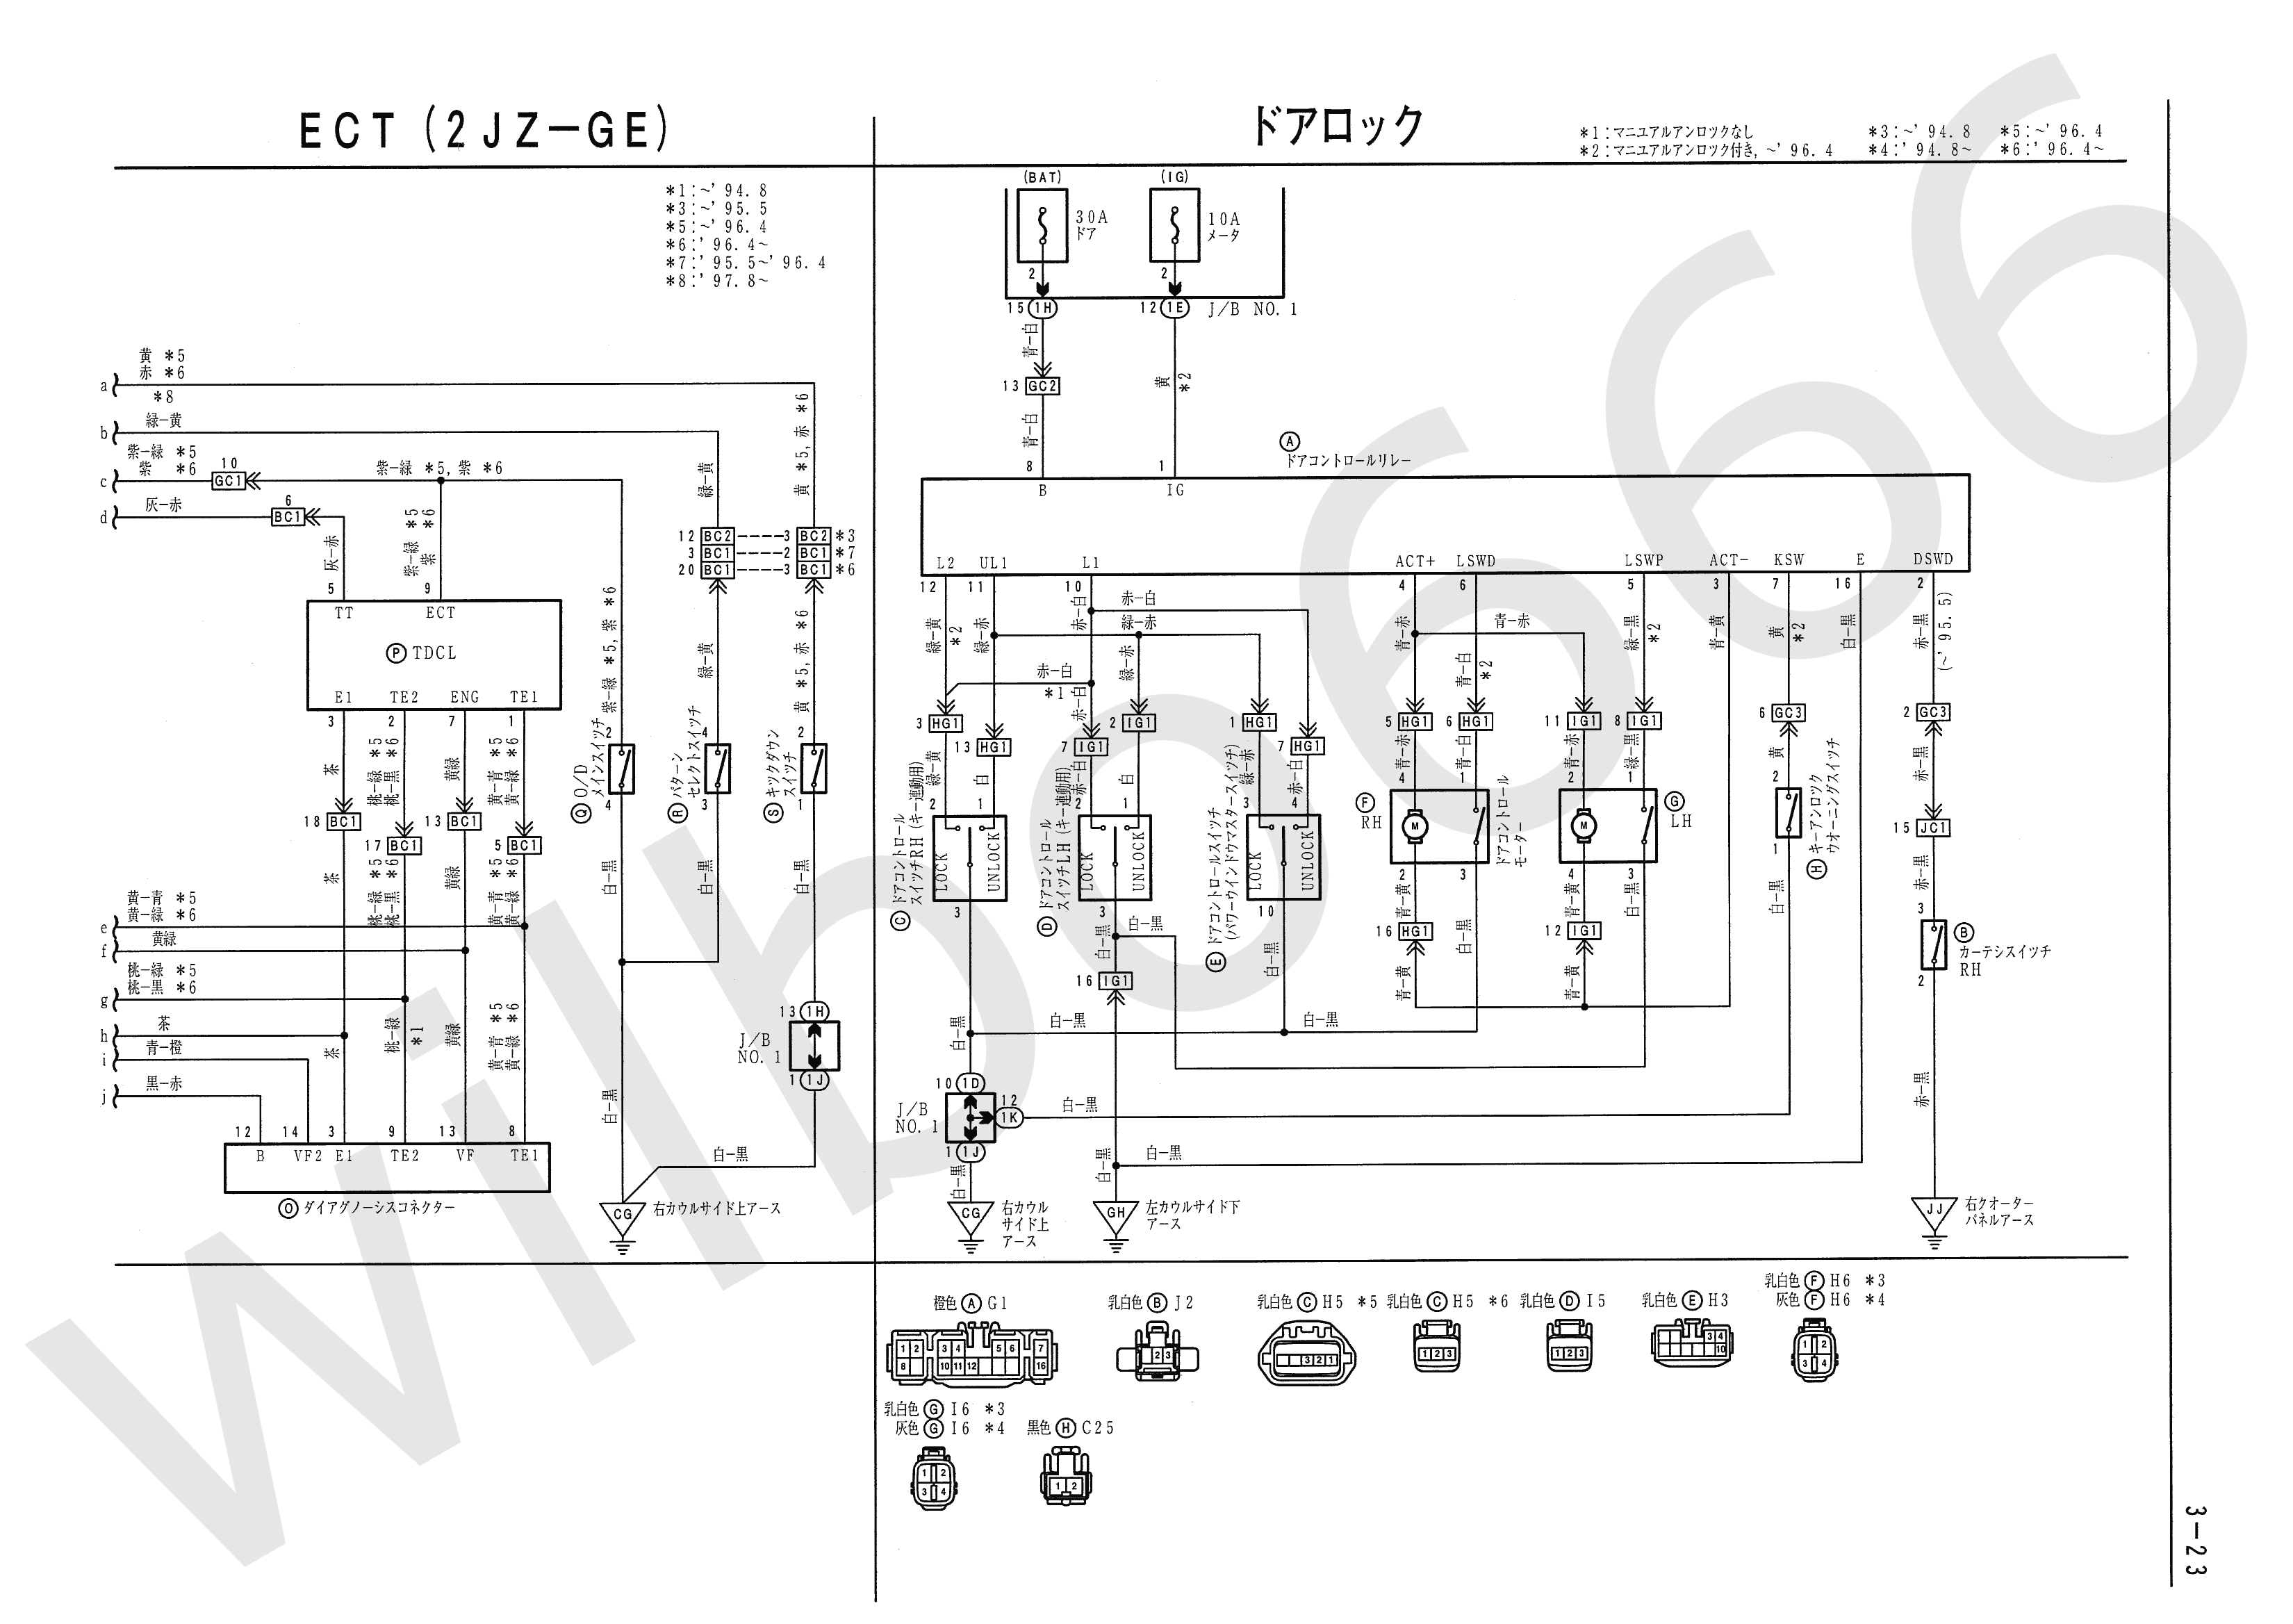 Wiring Diagram For Ge Low Voltage Switches Relays Electrical Relay Rr9 Schematic Diagrams Schematics